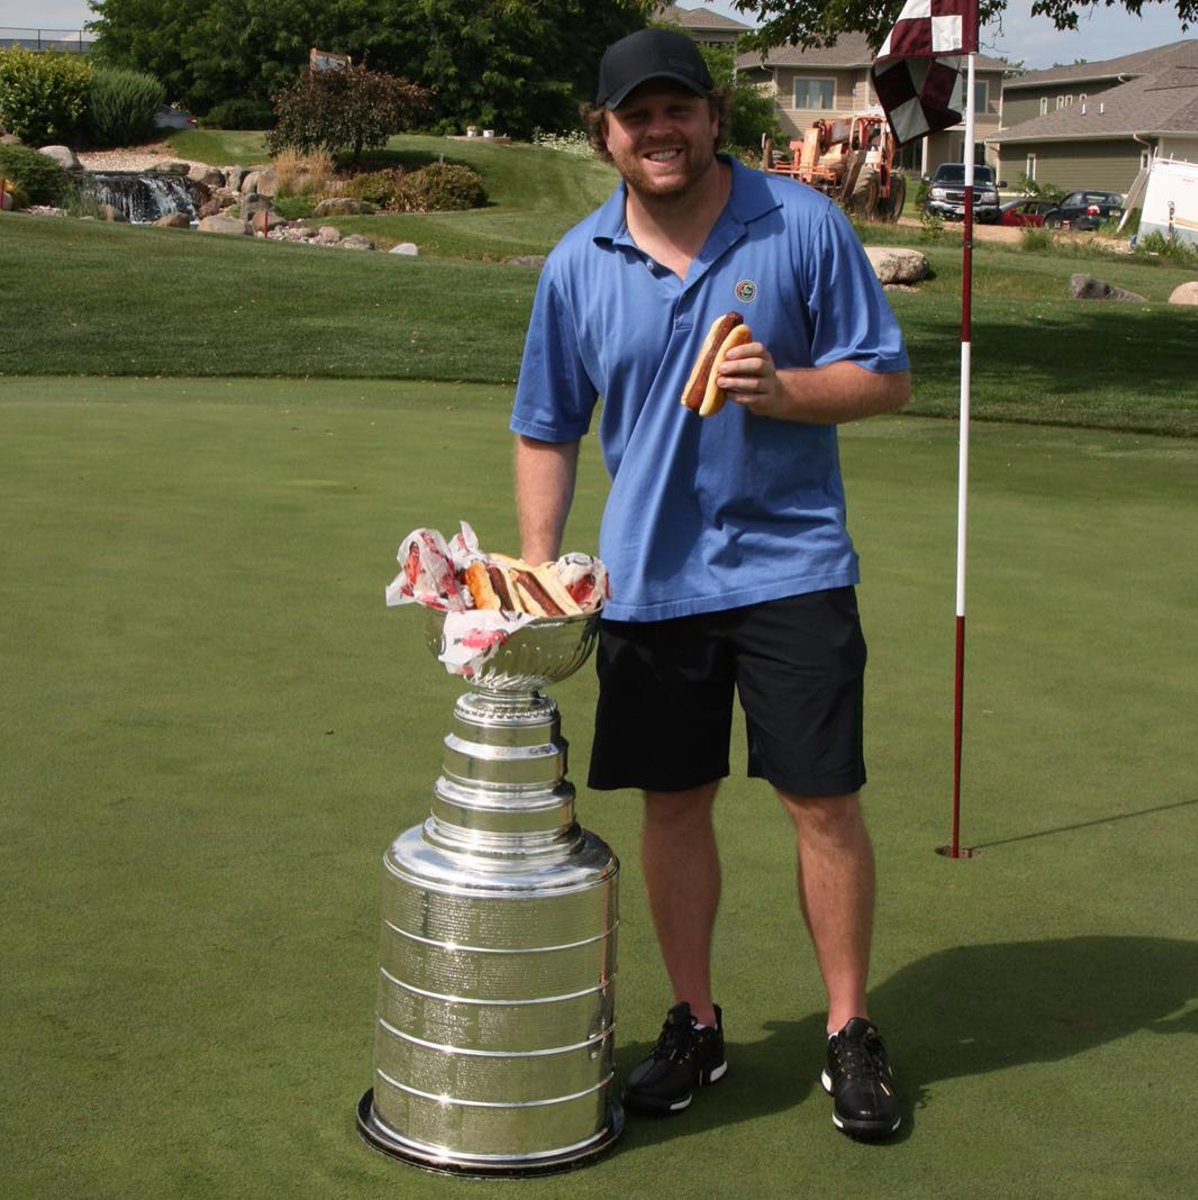 It's August 14th and two-time Stanley Cup Champion Phil Kessel is eati...